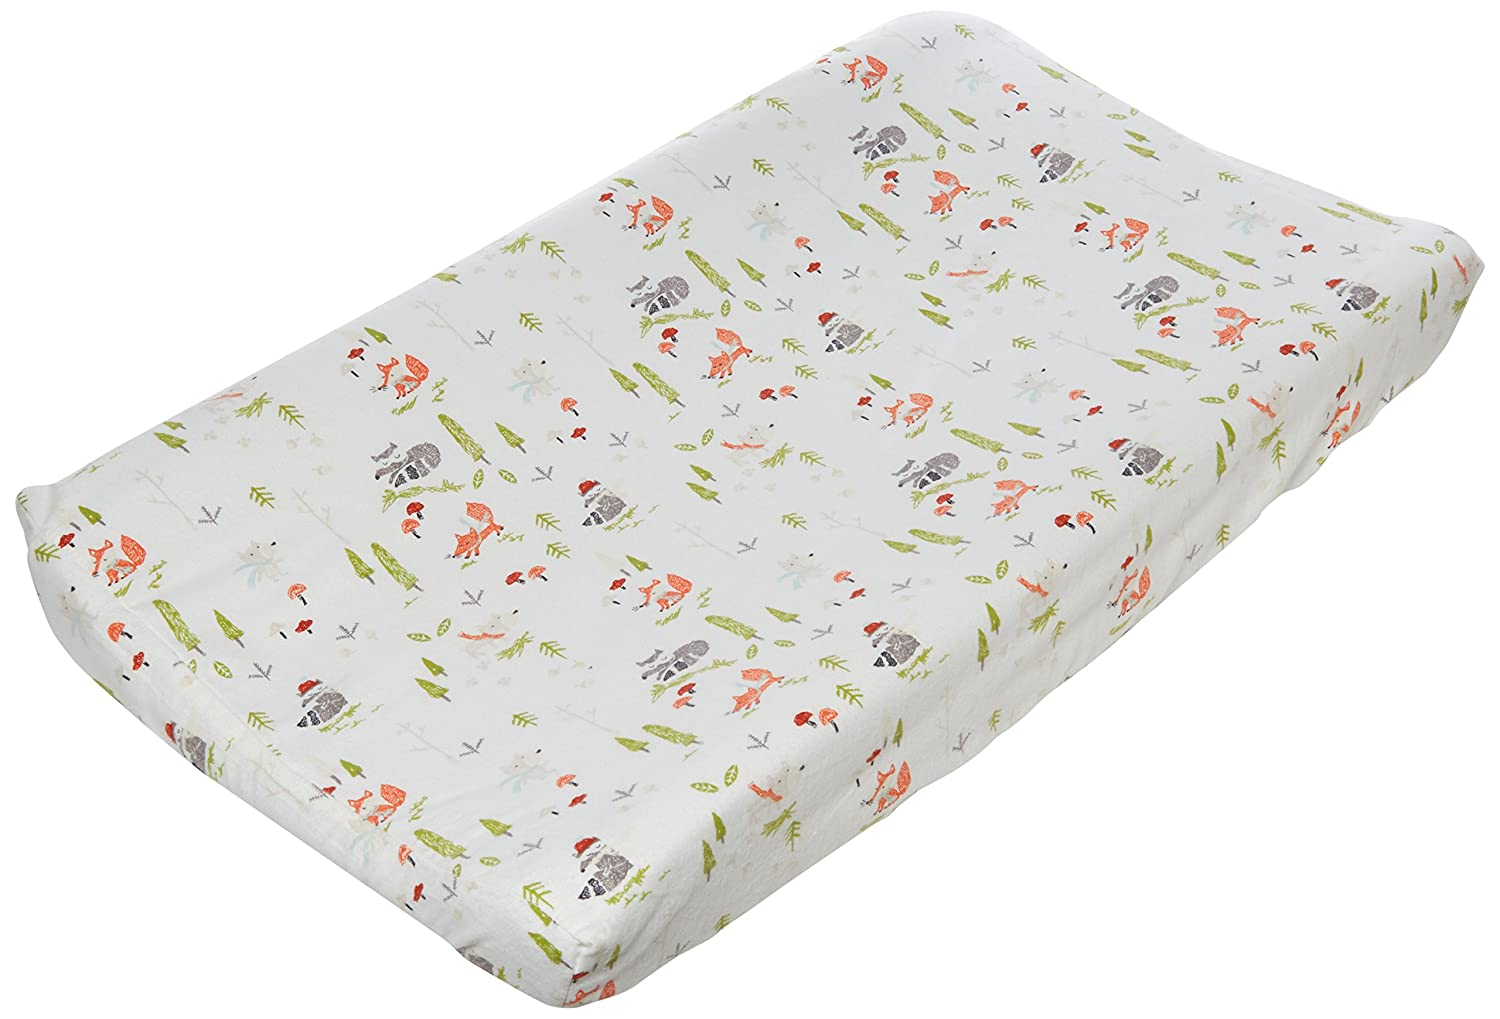 Trend Lab Winter Woods Deluxe Flannel Changing Pad Cover 101386